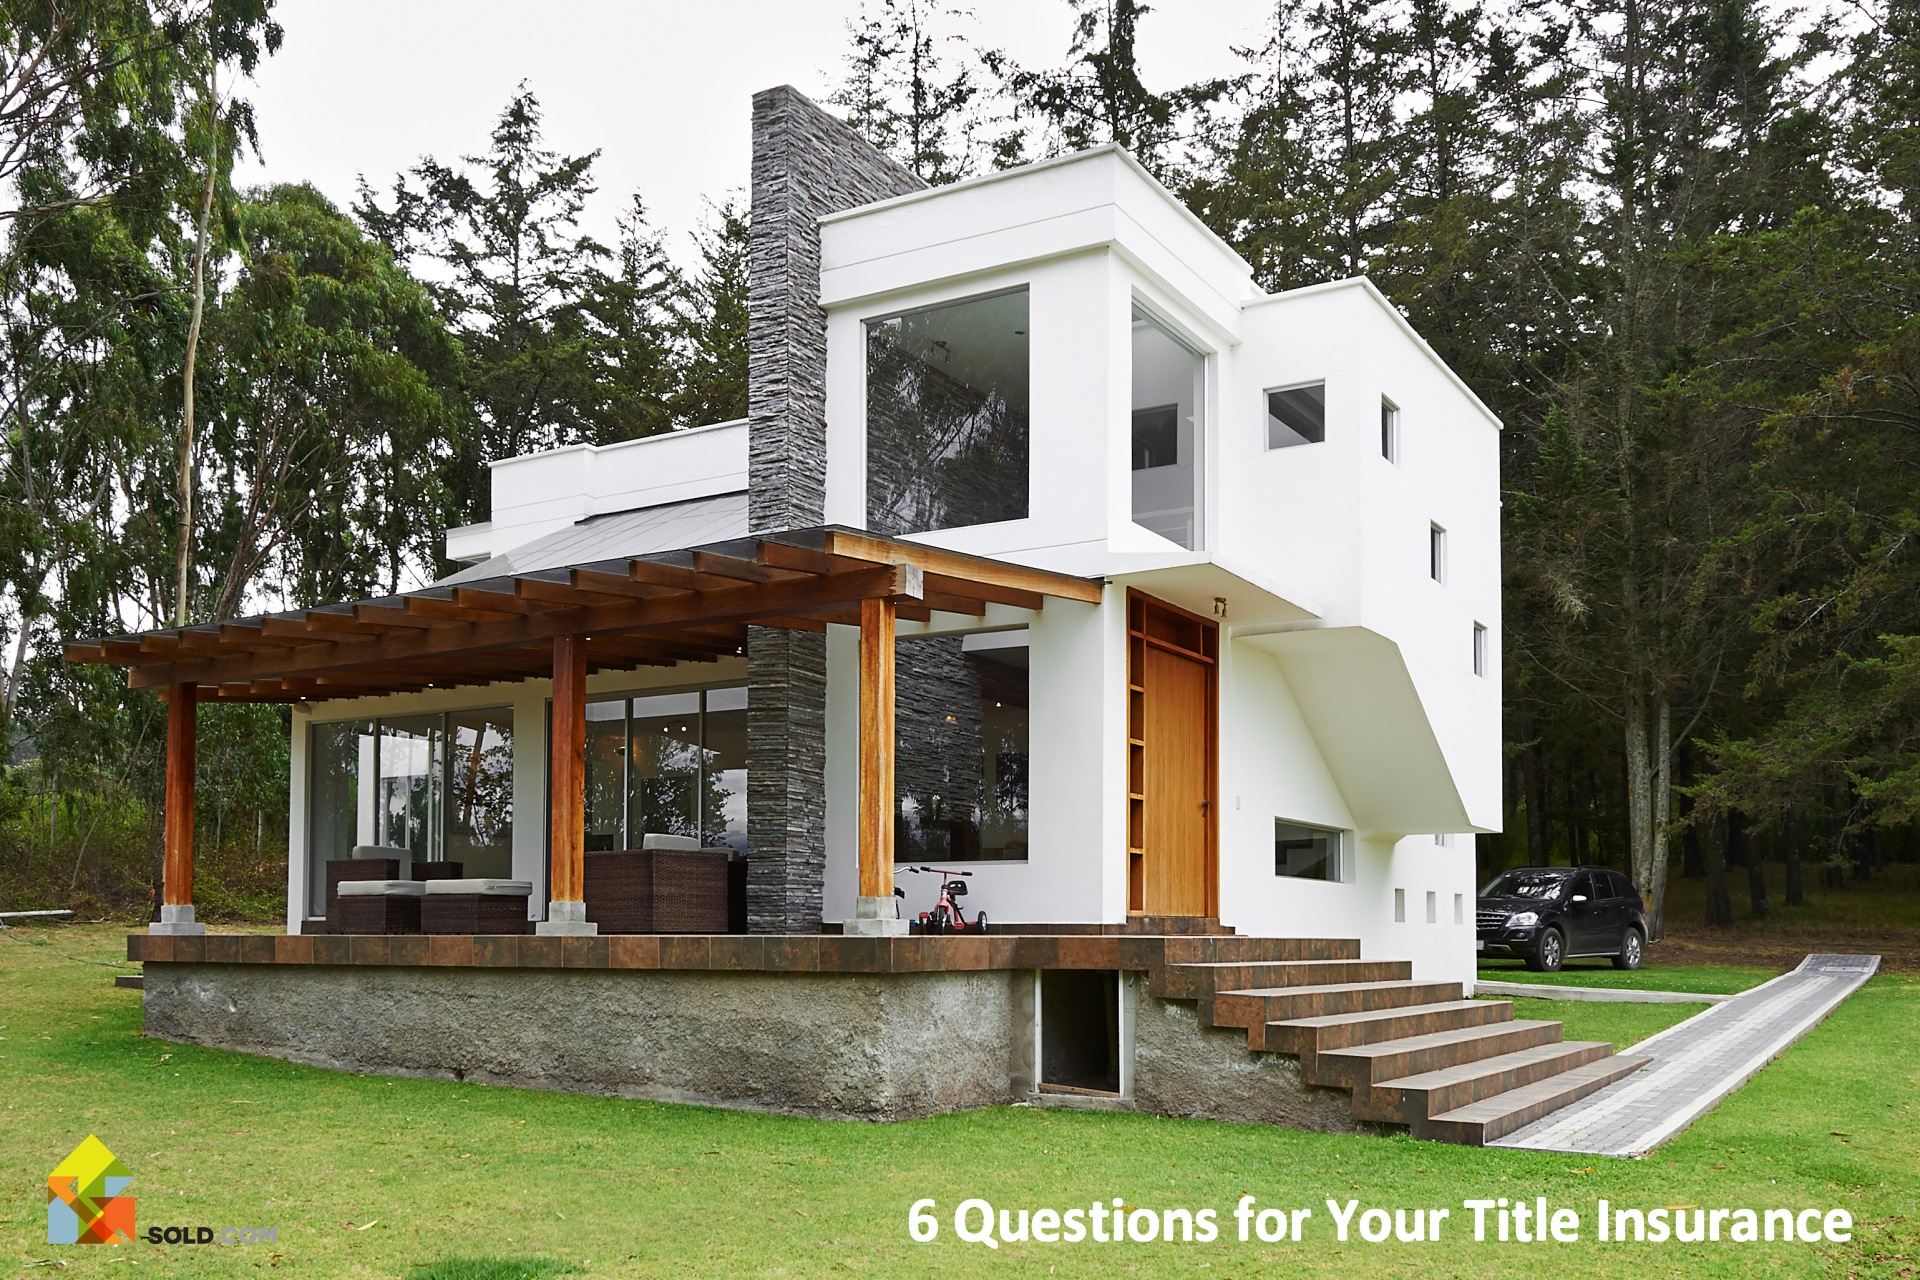 6 Questions for Your Title Insurance